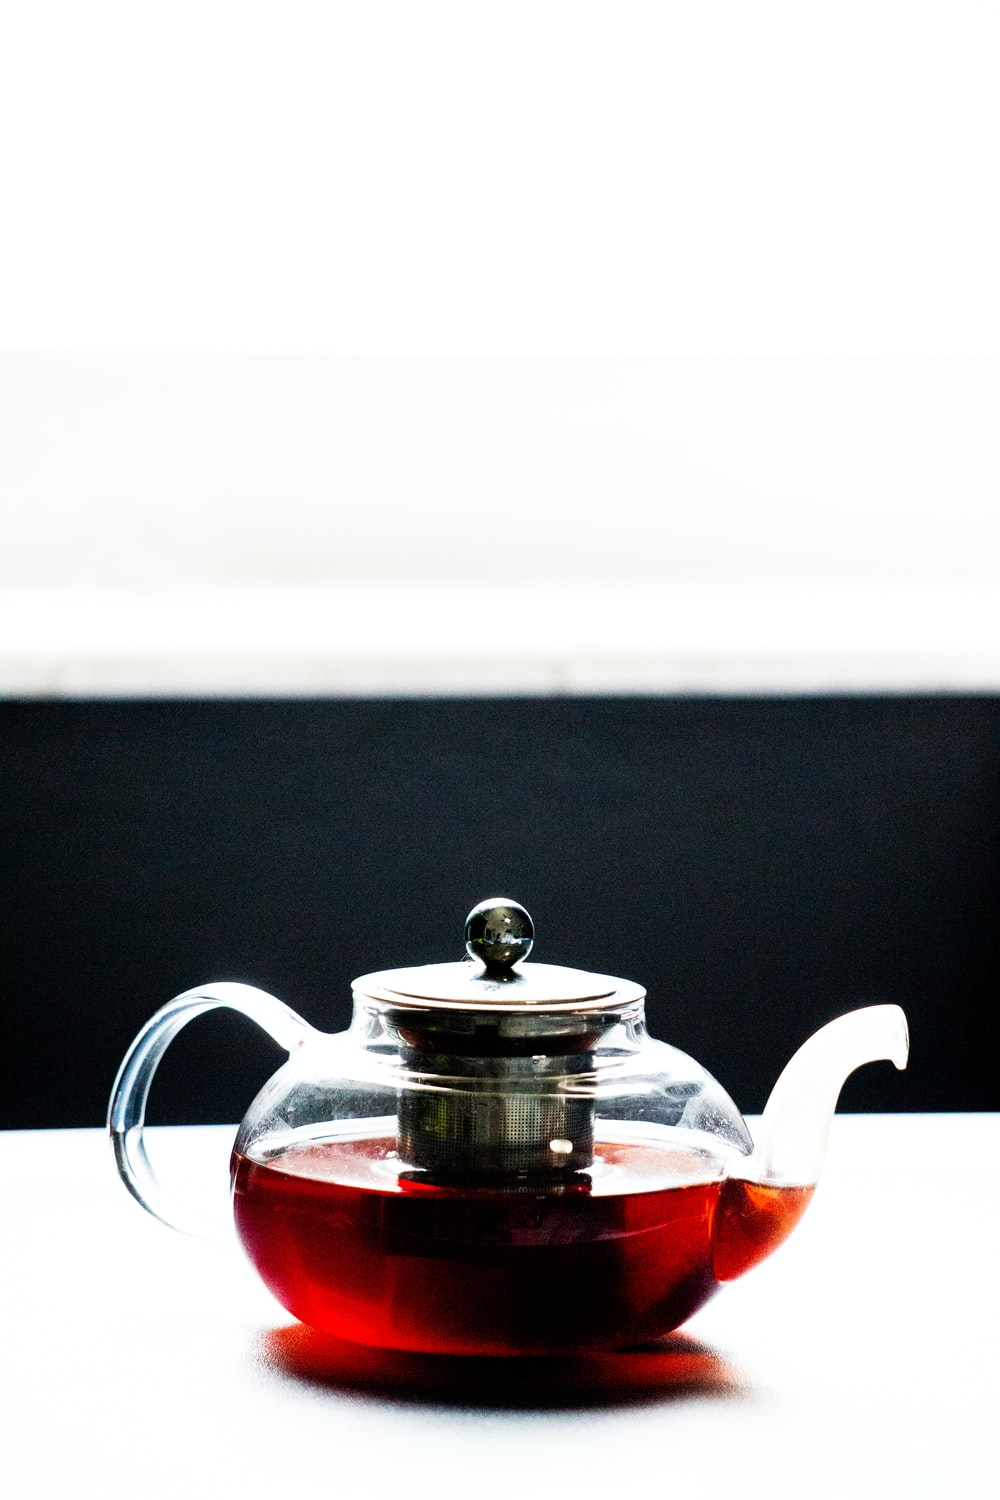 red and silver teapot on black table